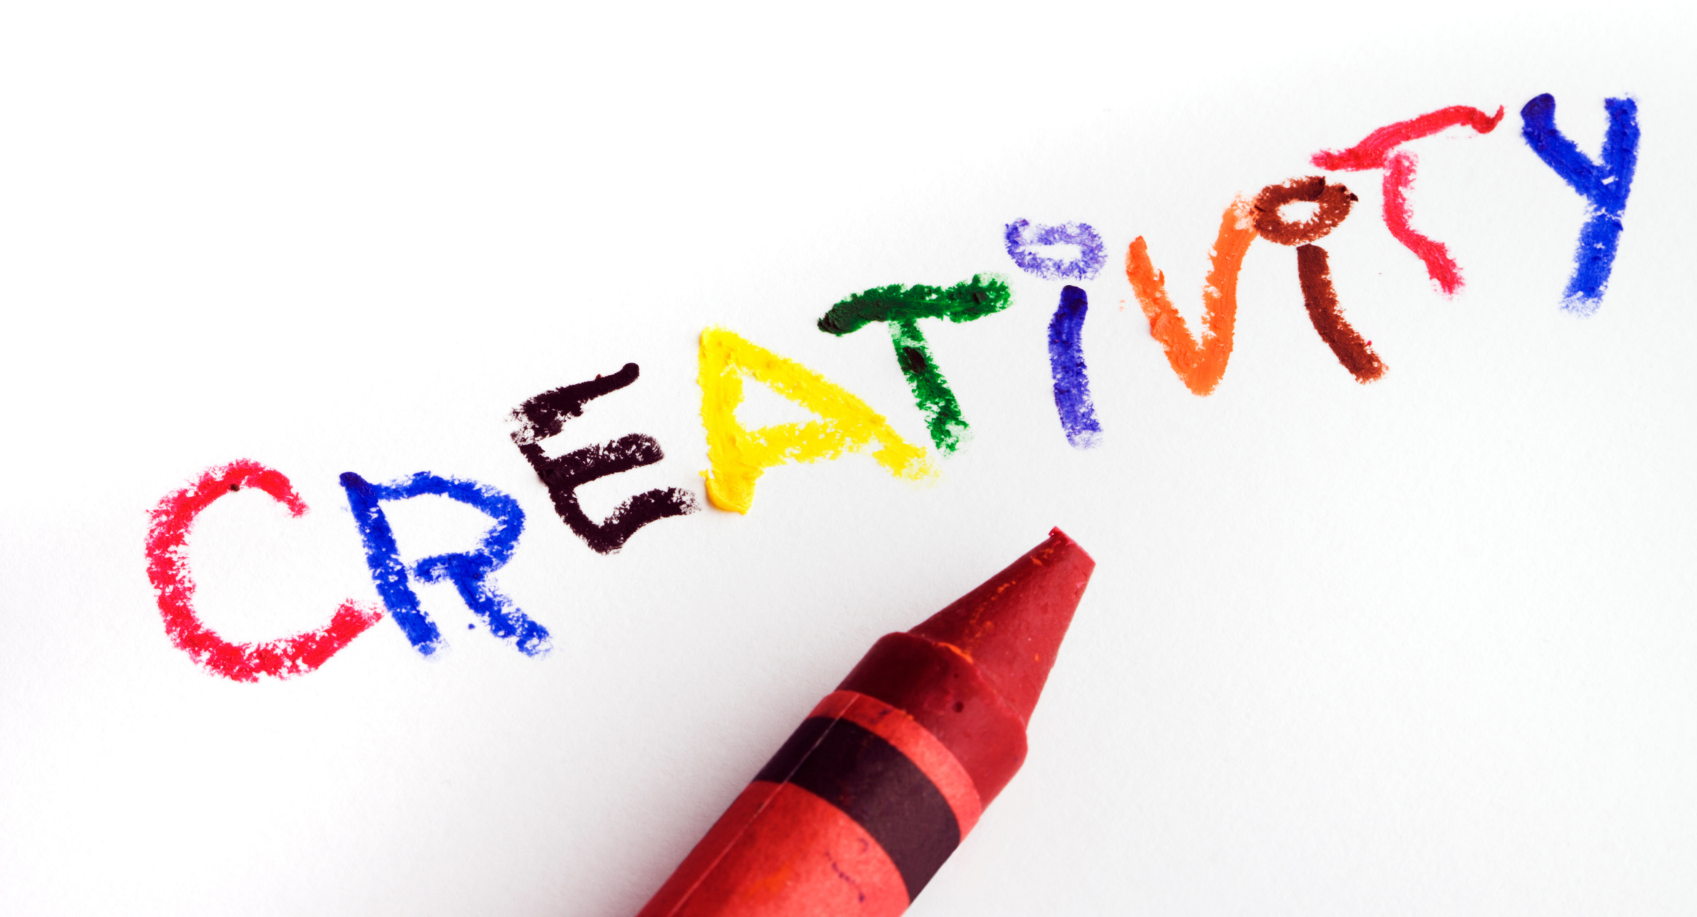 Argumentative Essay Liberal Arts Education An art in the Competitive Market